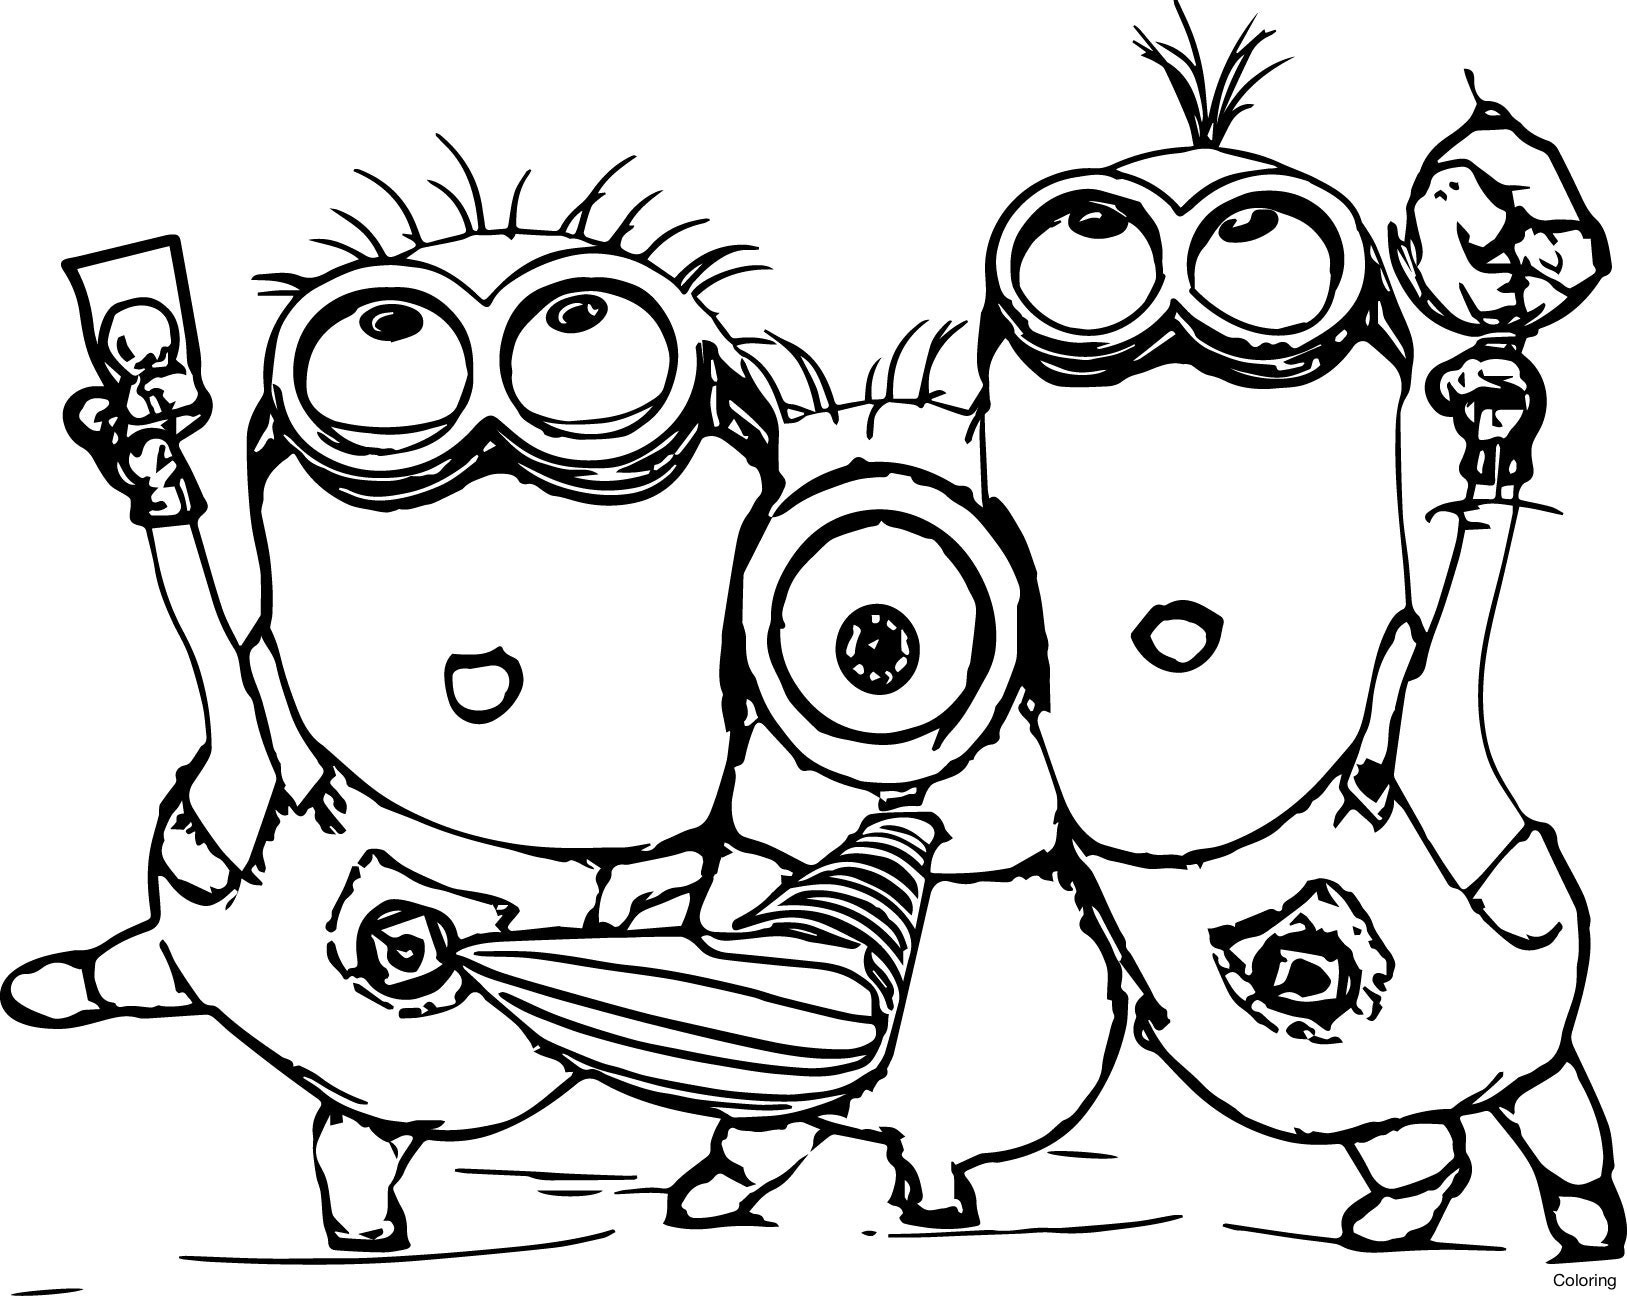 free printable minion coloring pages minions coloring pages to print coloring pages for kids pages free minion coloring printable